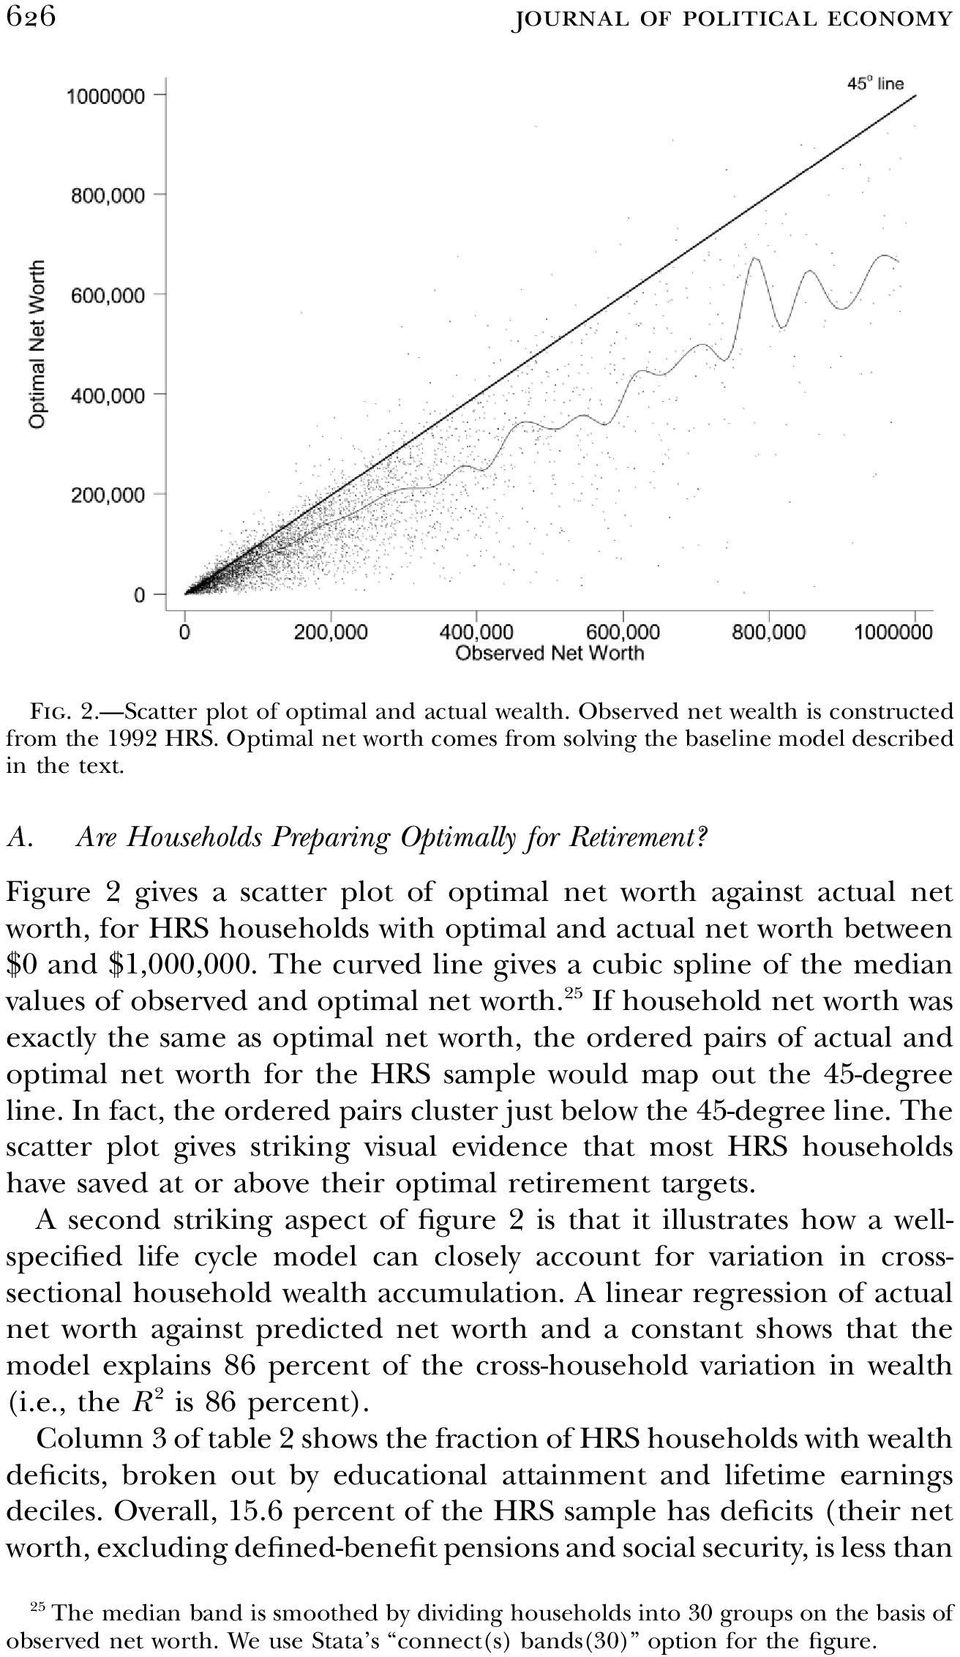 Figure 2 gives a scatter plot of optimal net worth against actual net worth, for HRS households with optimal and actual net worth between $0 and $1,000,000.